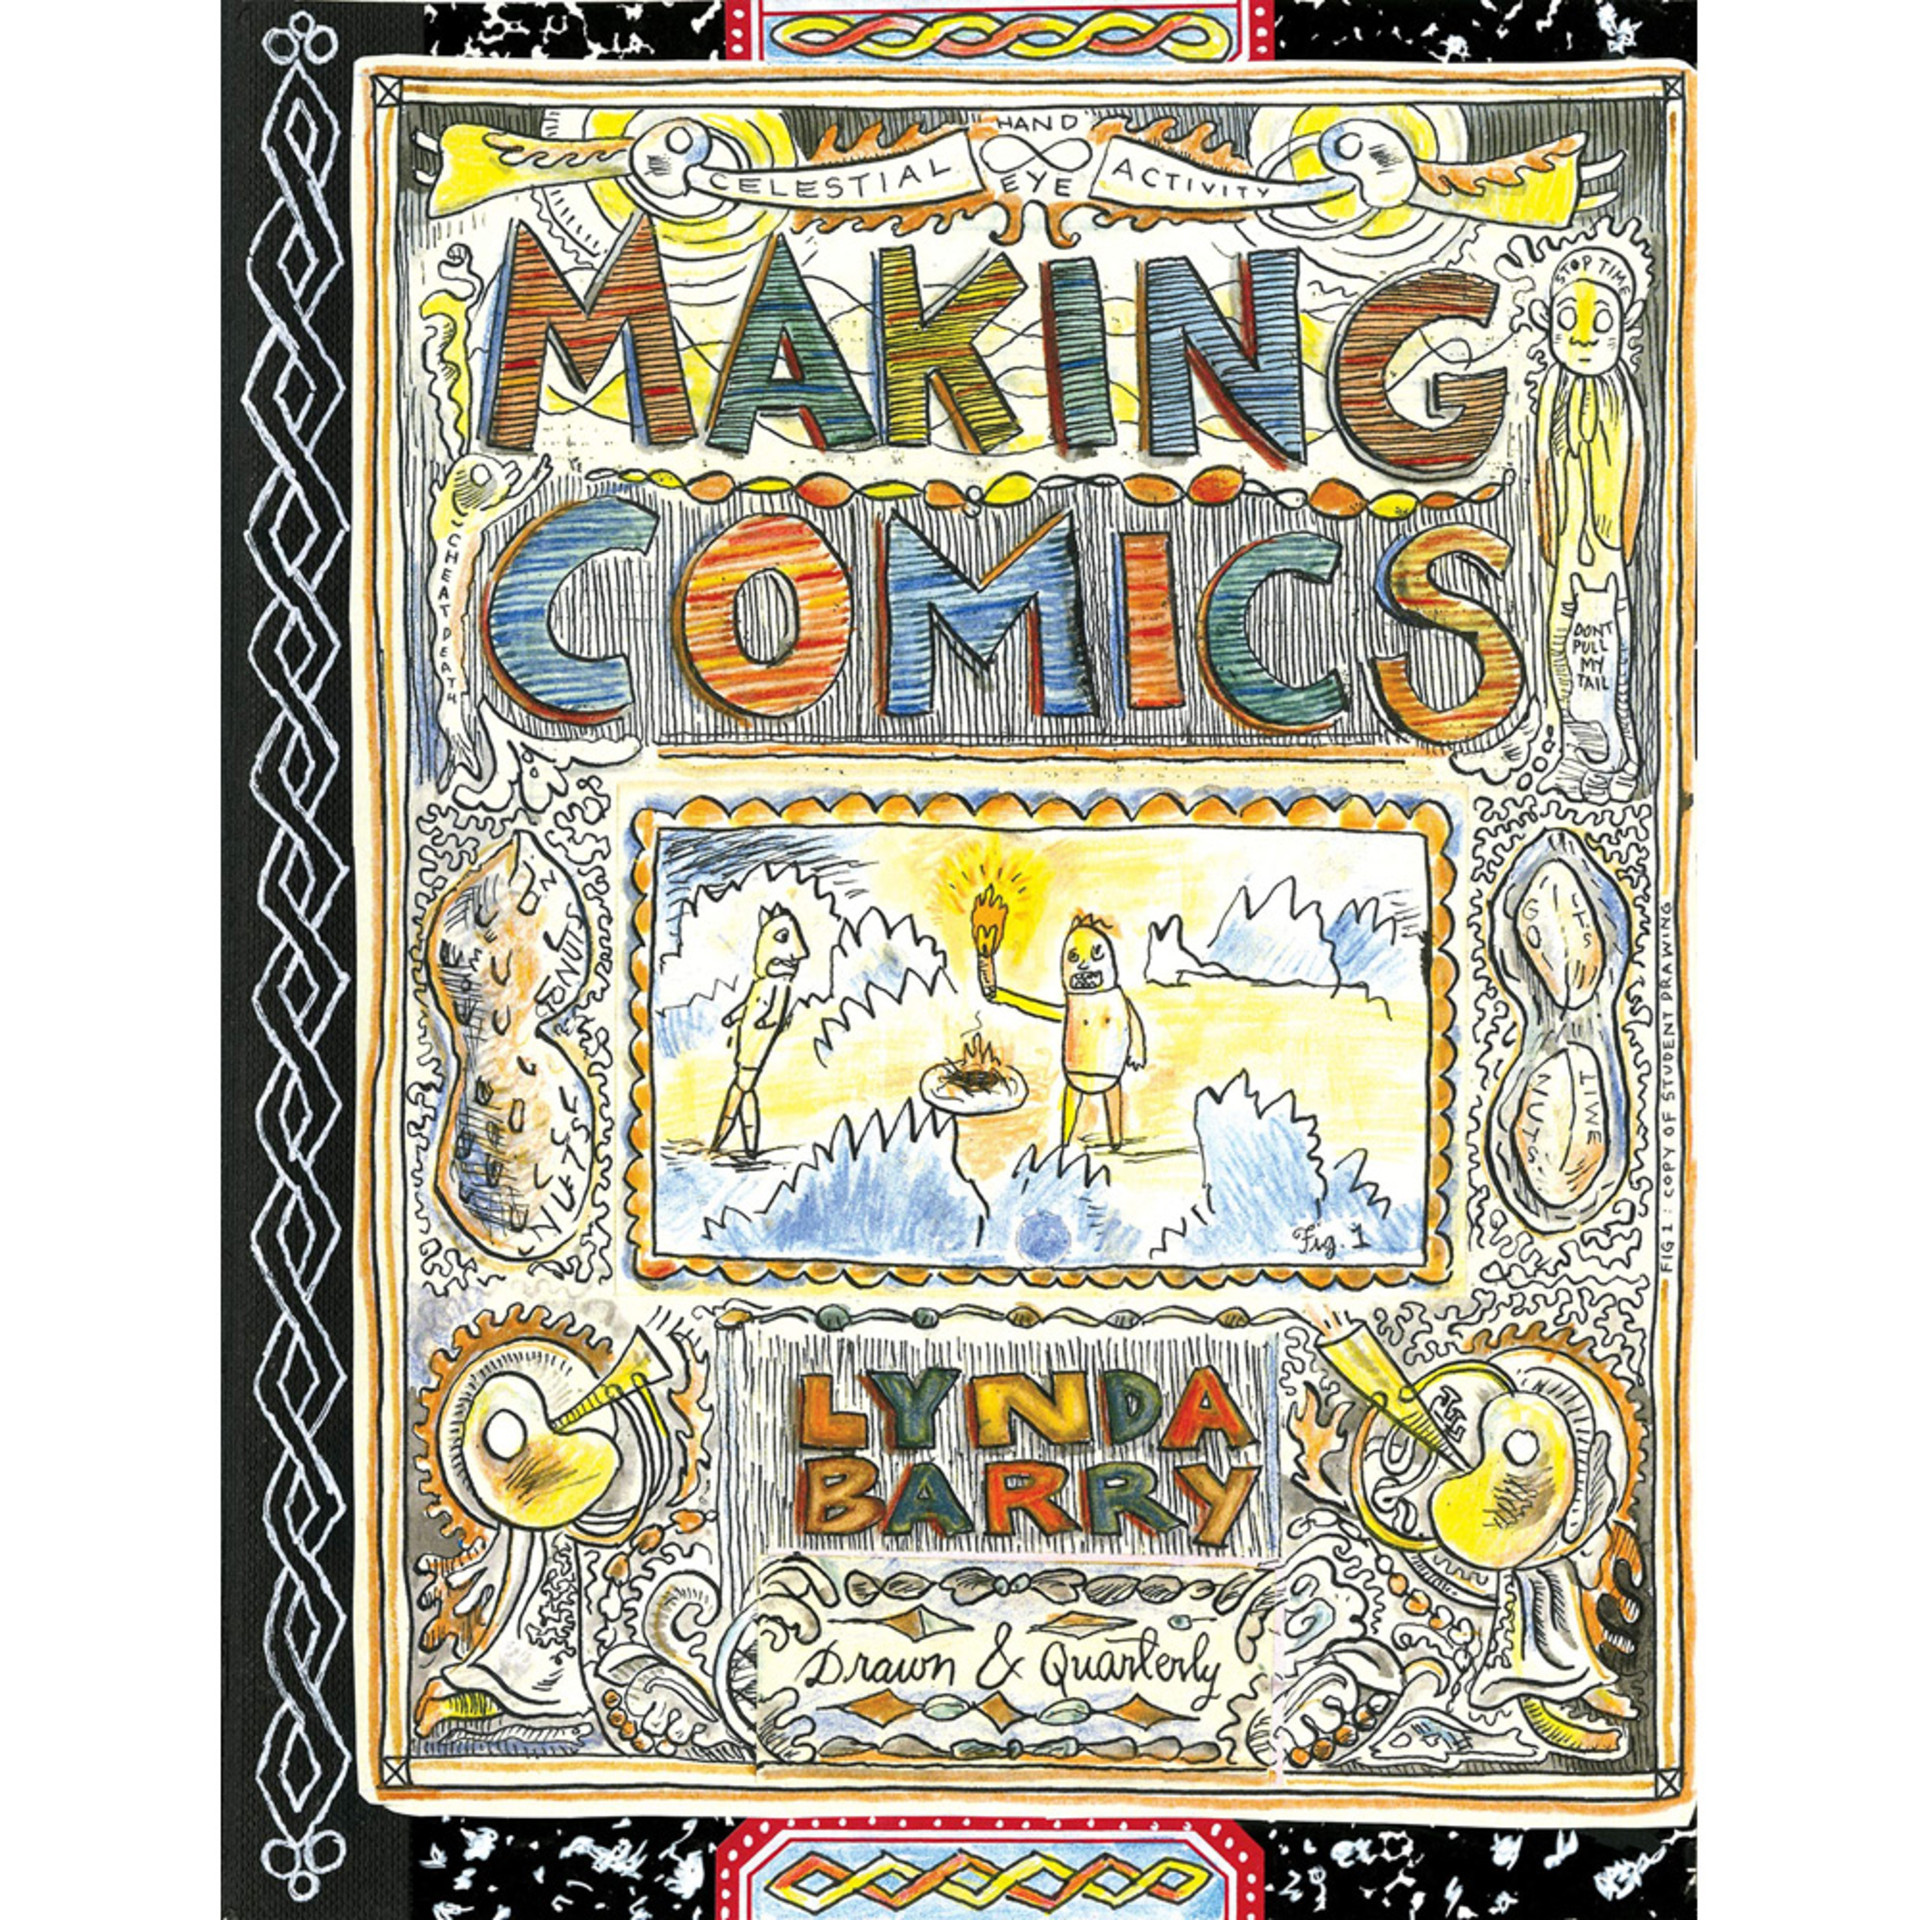 Making Comics by Lynda Barry